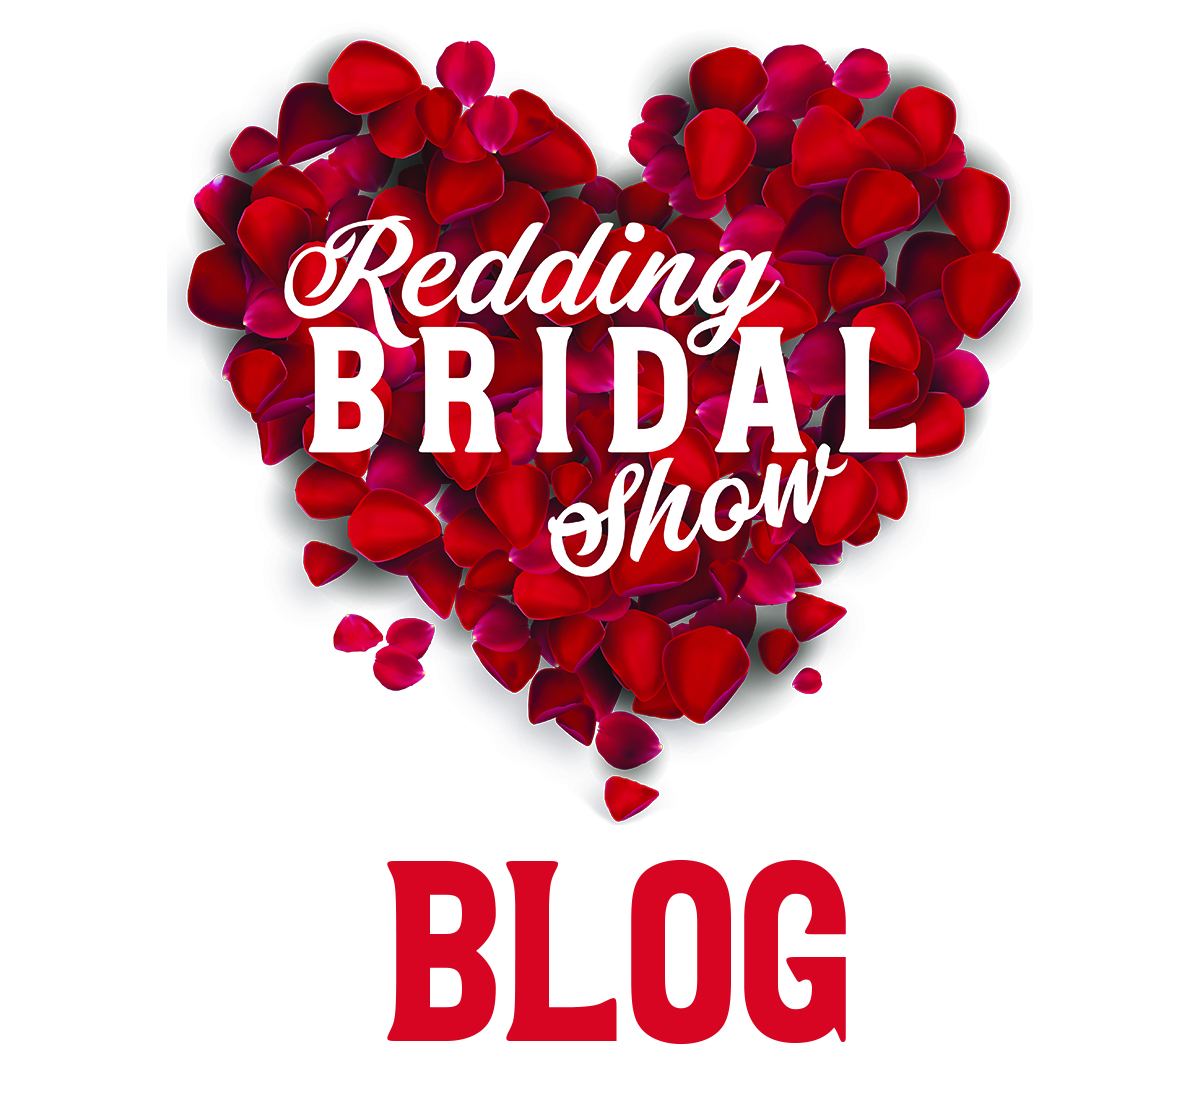 Redding Bridal Show Blog.jpg